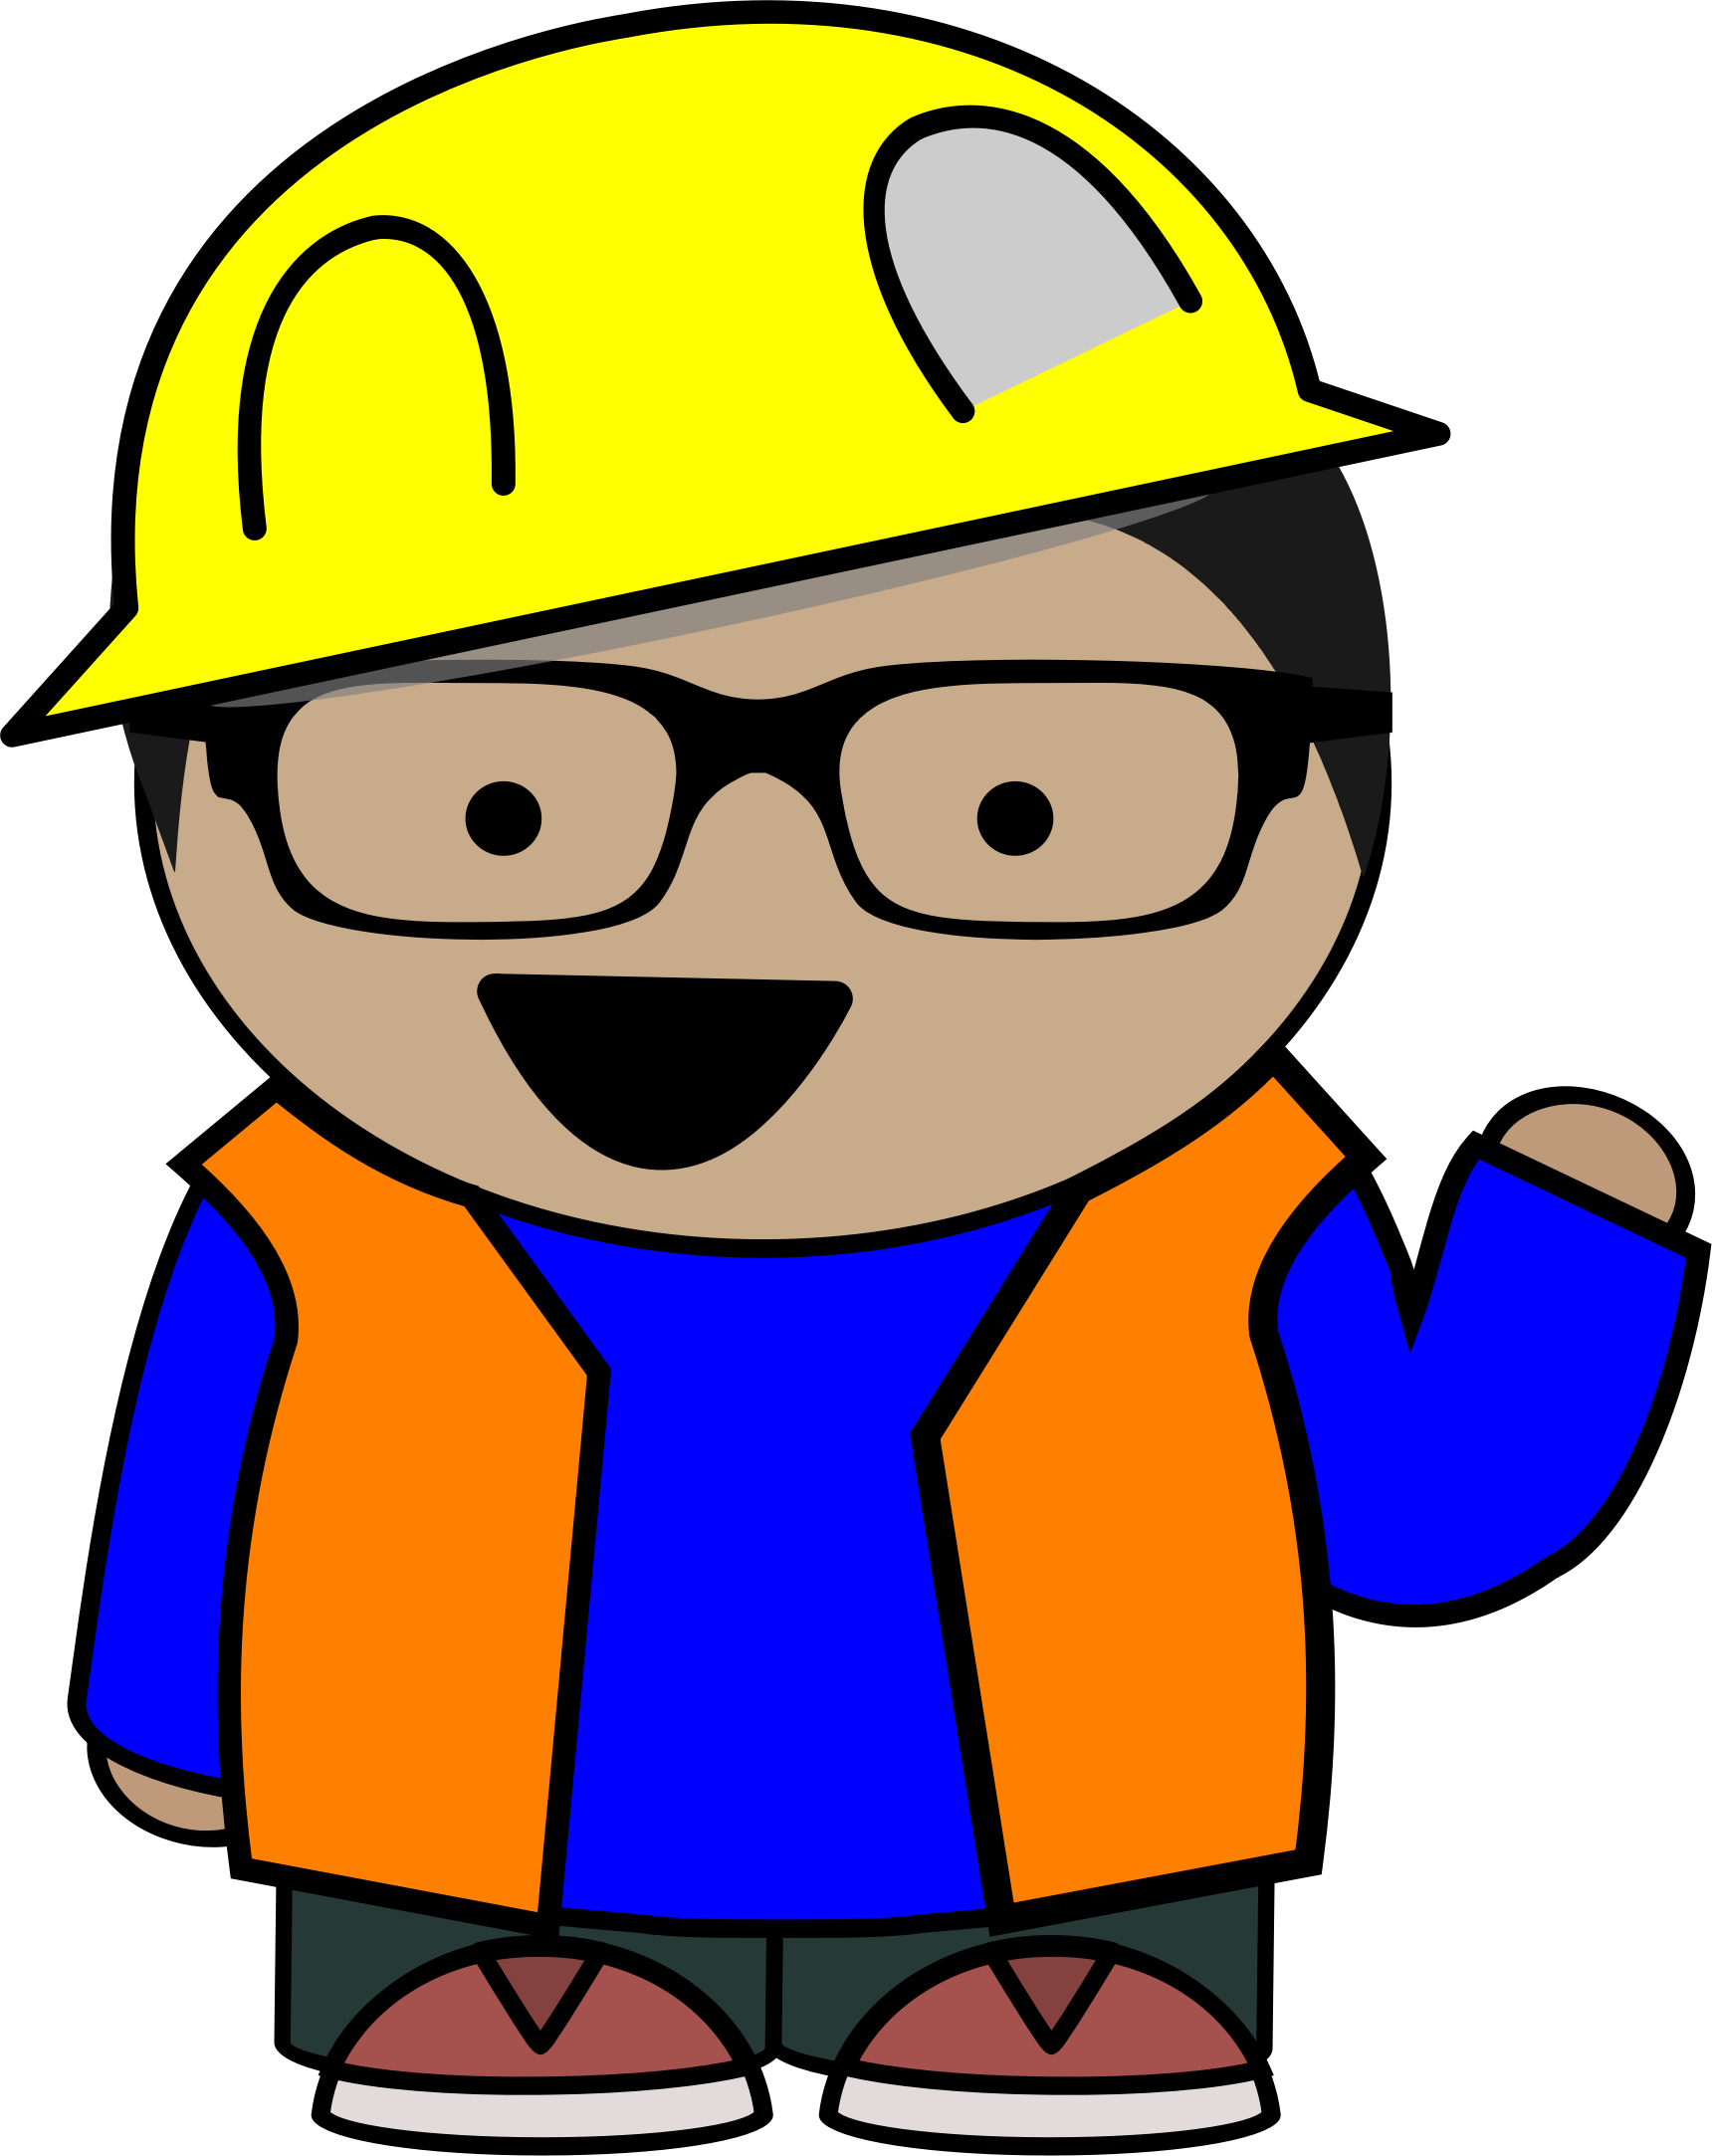 independent contractor misclassified under labor & employment law